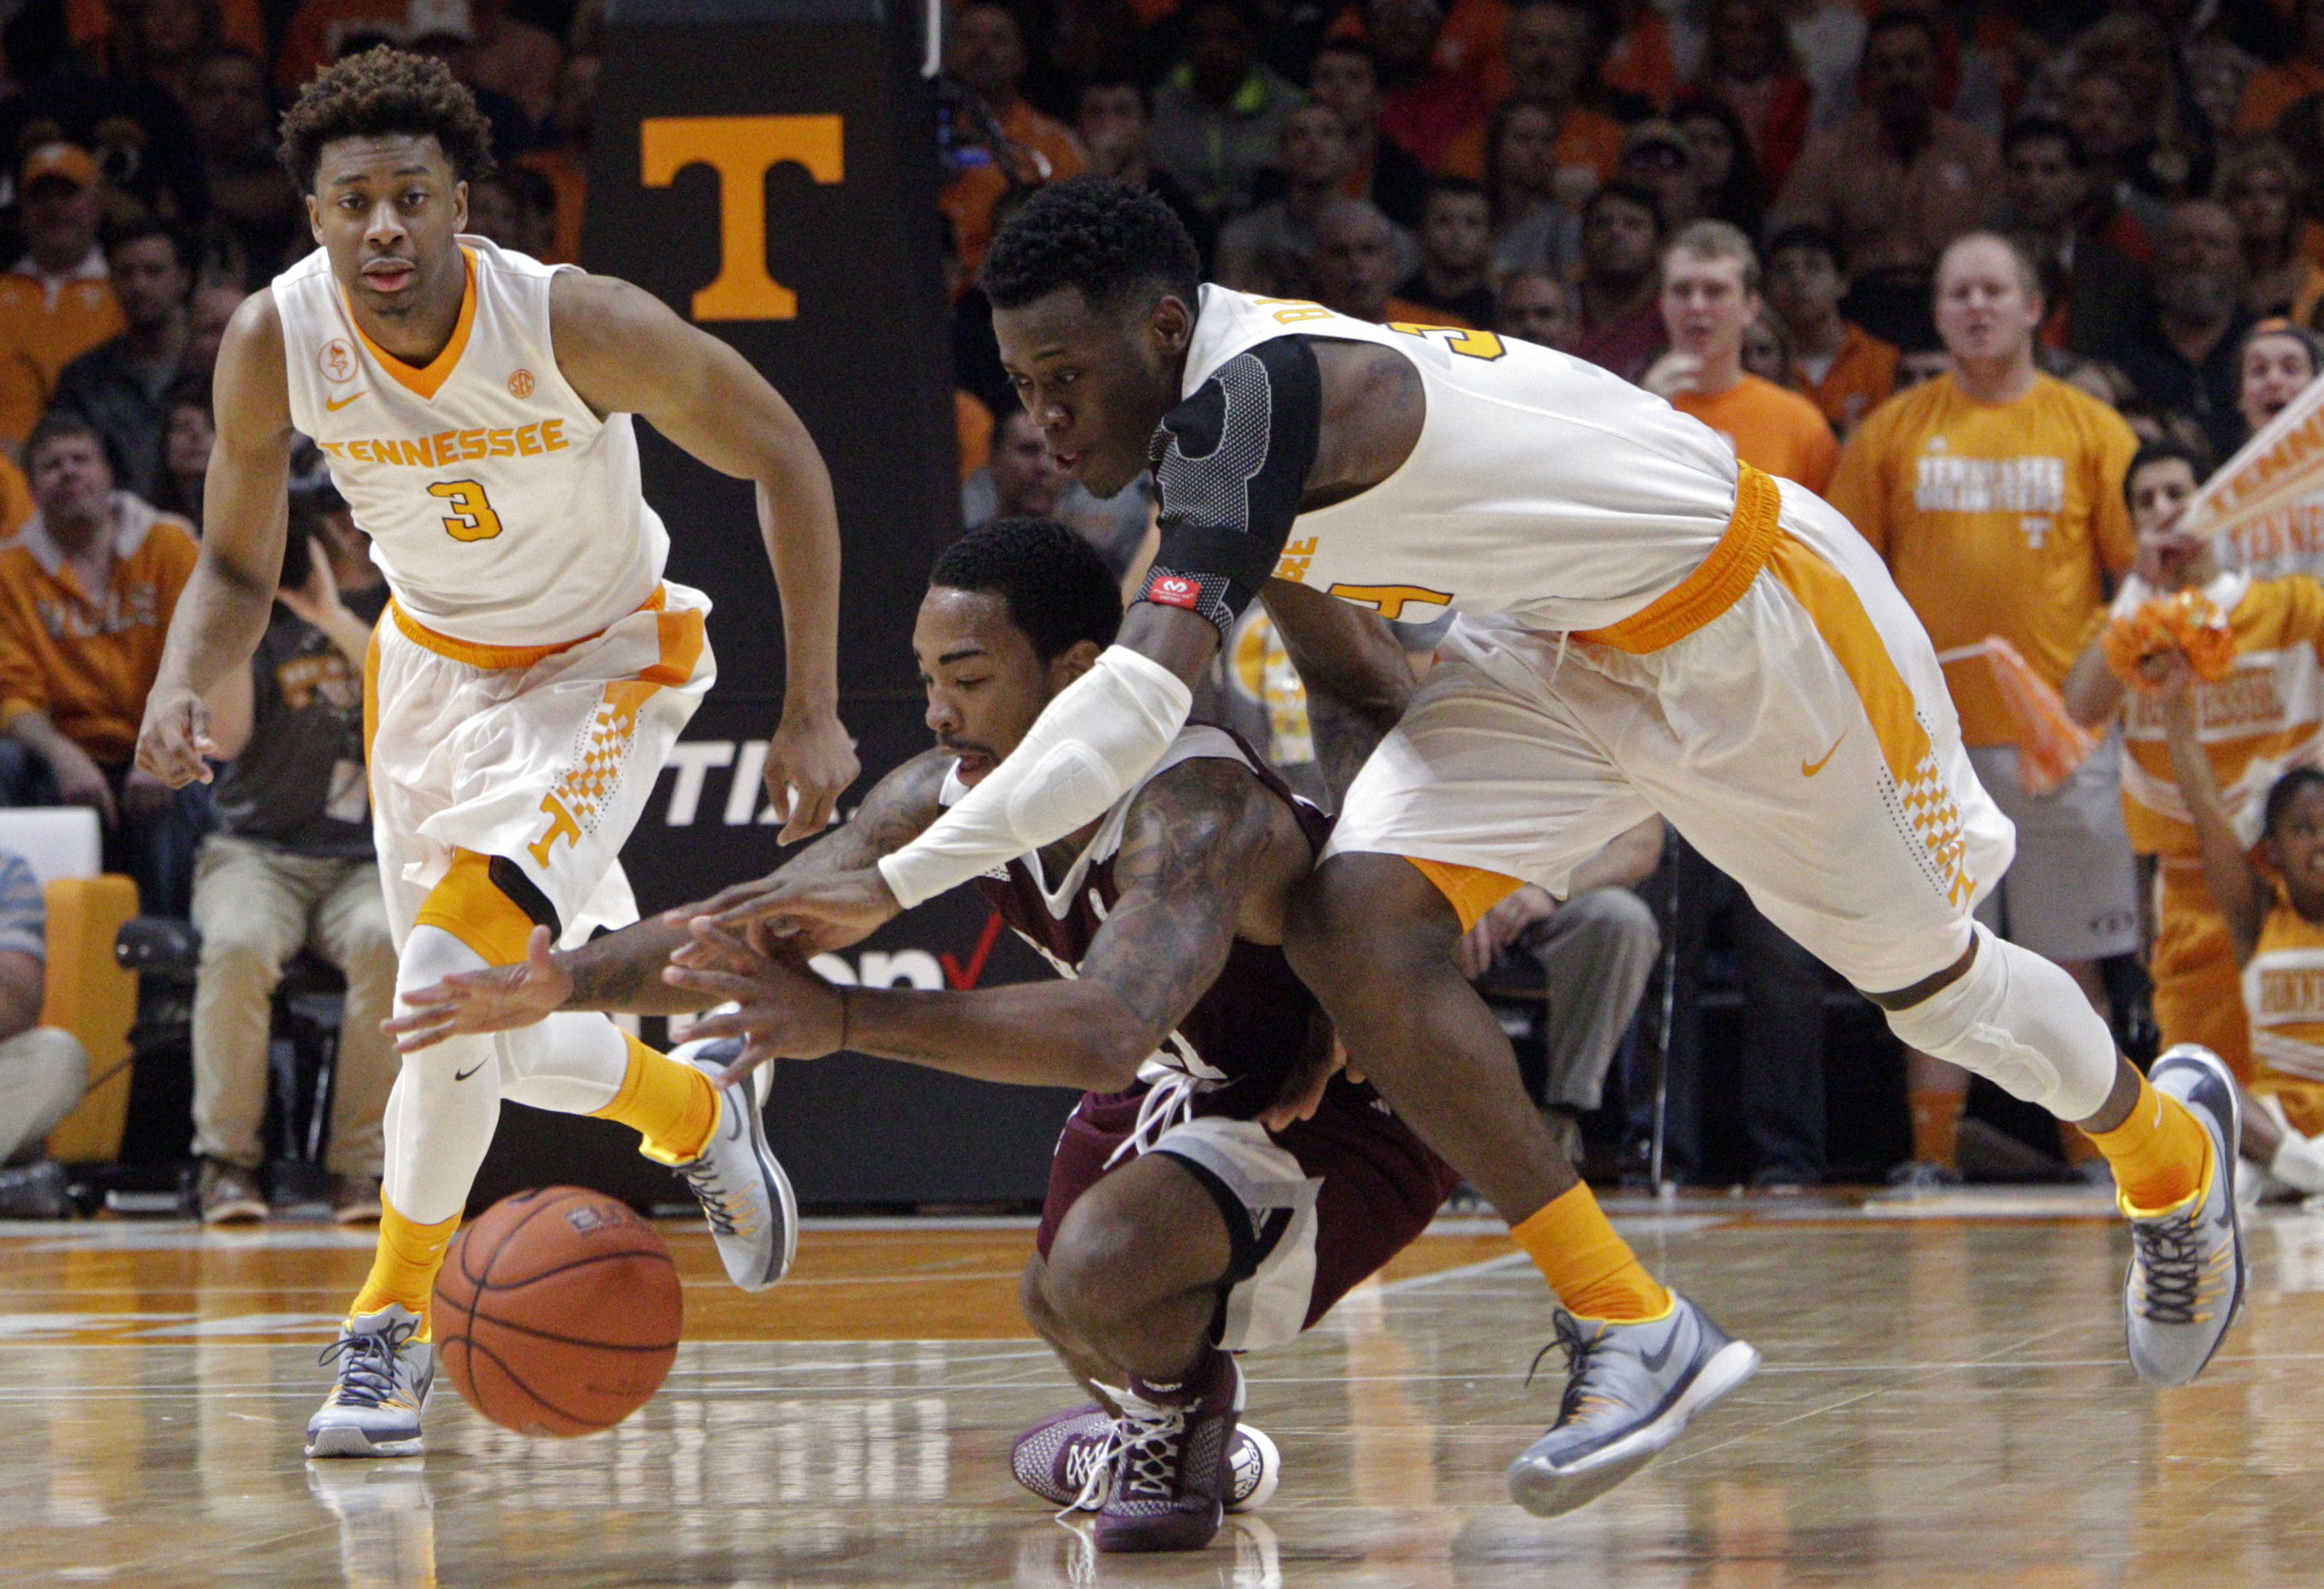 Tennessee guard Devon Baulkman, right, battles for the ball with Texas A&M guard Anthony Collins (11) during the first half of an NCAA college basketball game Saturday, Jan. 9, 2016, in Knoxville, Tenn. Tennessee guard Robert Hubbs III (3) trails. (AP Pho